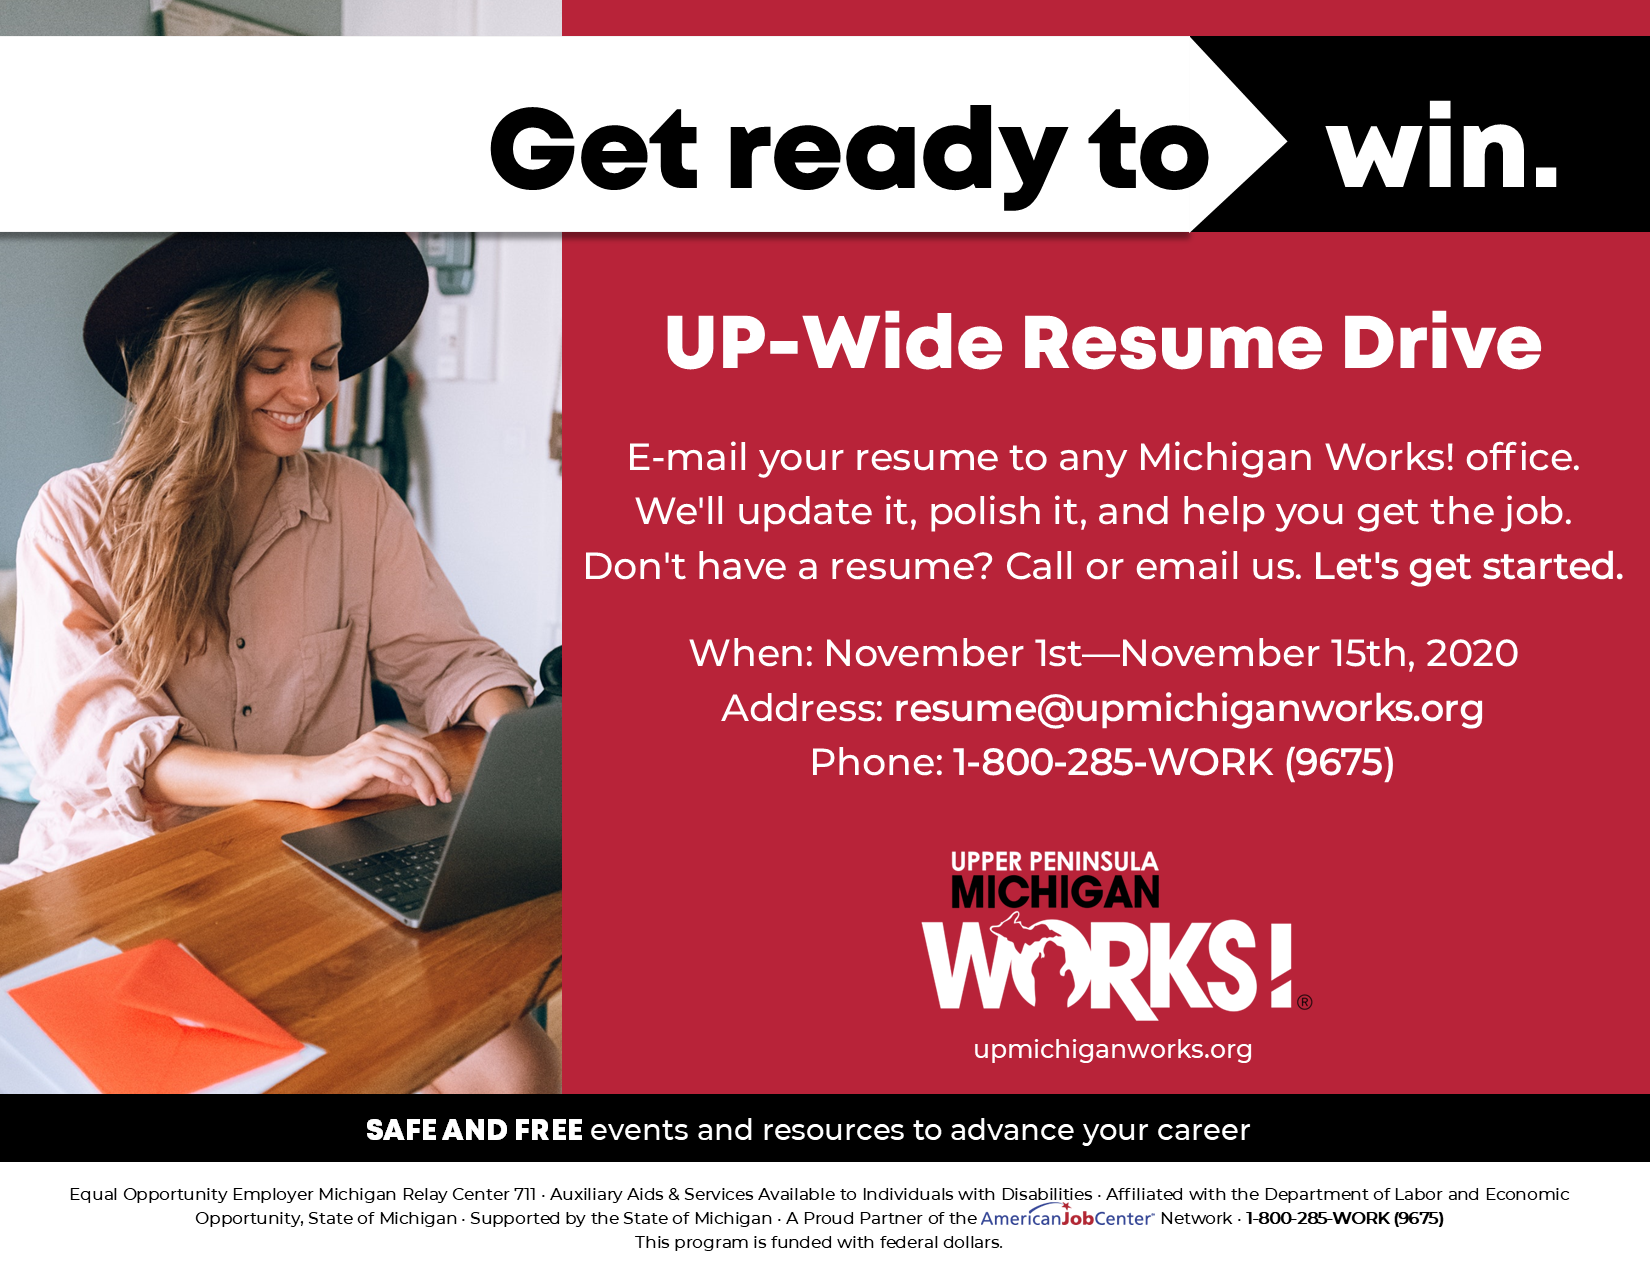 A flyer for the UPMW resume drive in November which takes place from November 1st to the 15th. Email resumes to resume@upmichiganworks.org.